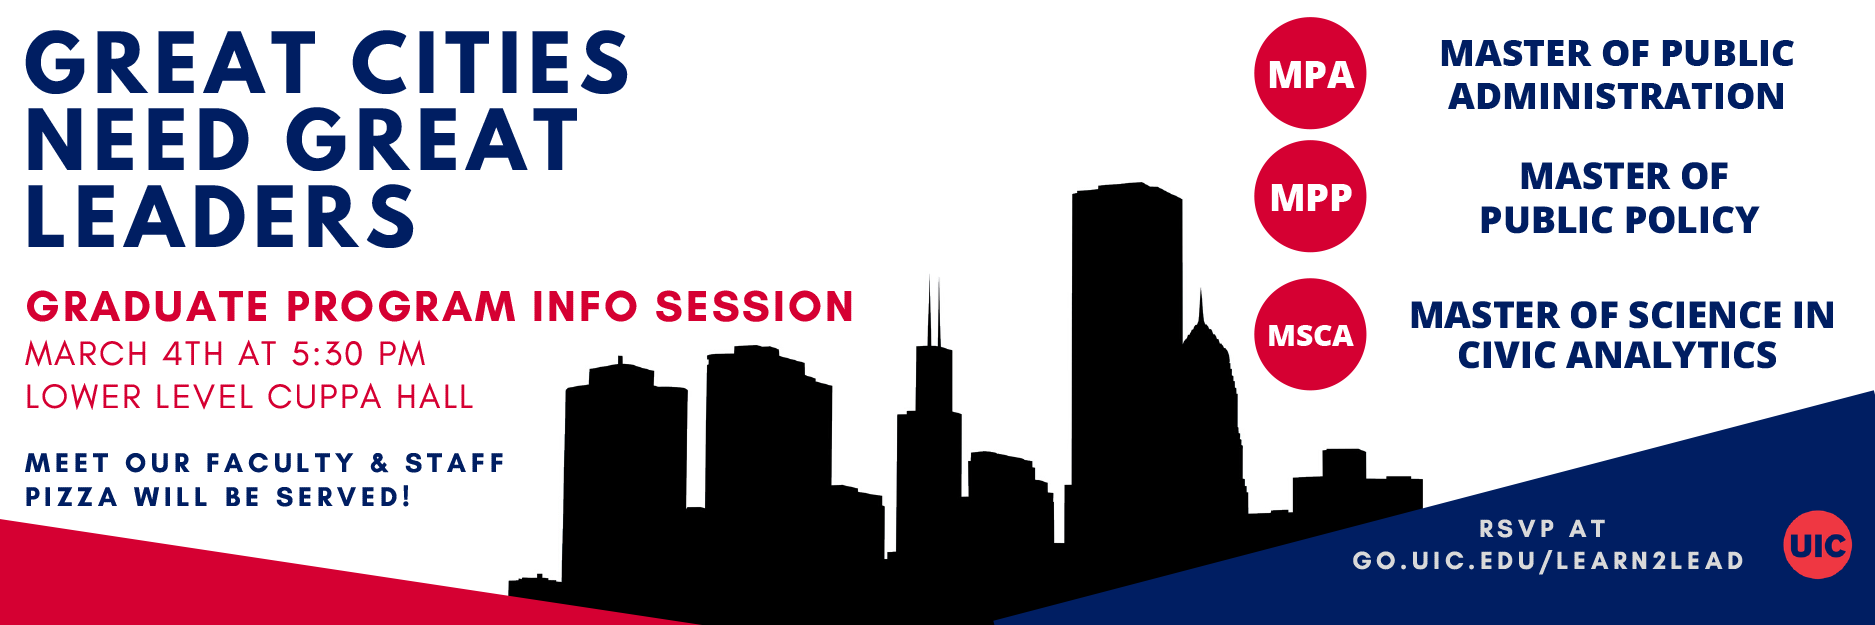 Great Cities Need Great Leaders - Graduate program info session, march 4th at 5:30 PM lower level CUPPA Hall. Meet our faculty and staff. Pizza will be served! Master of Public Administration, Master of Public Policy, Master of Science in civic analytics - Rsvp at go.uic.edu/learn2lead